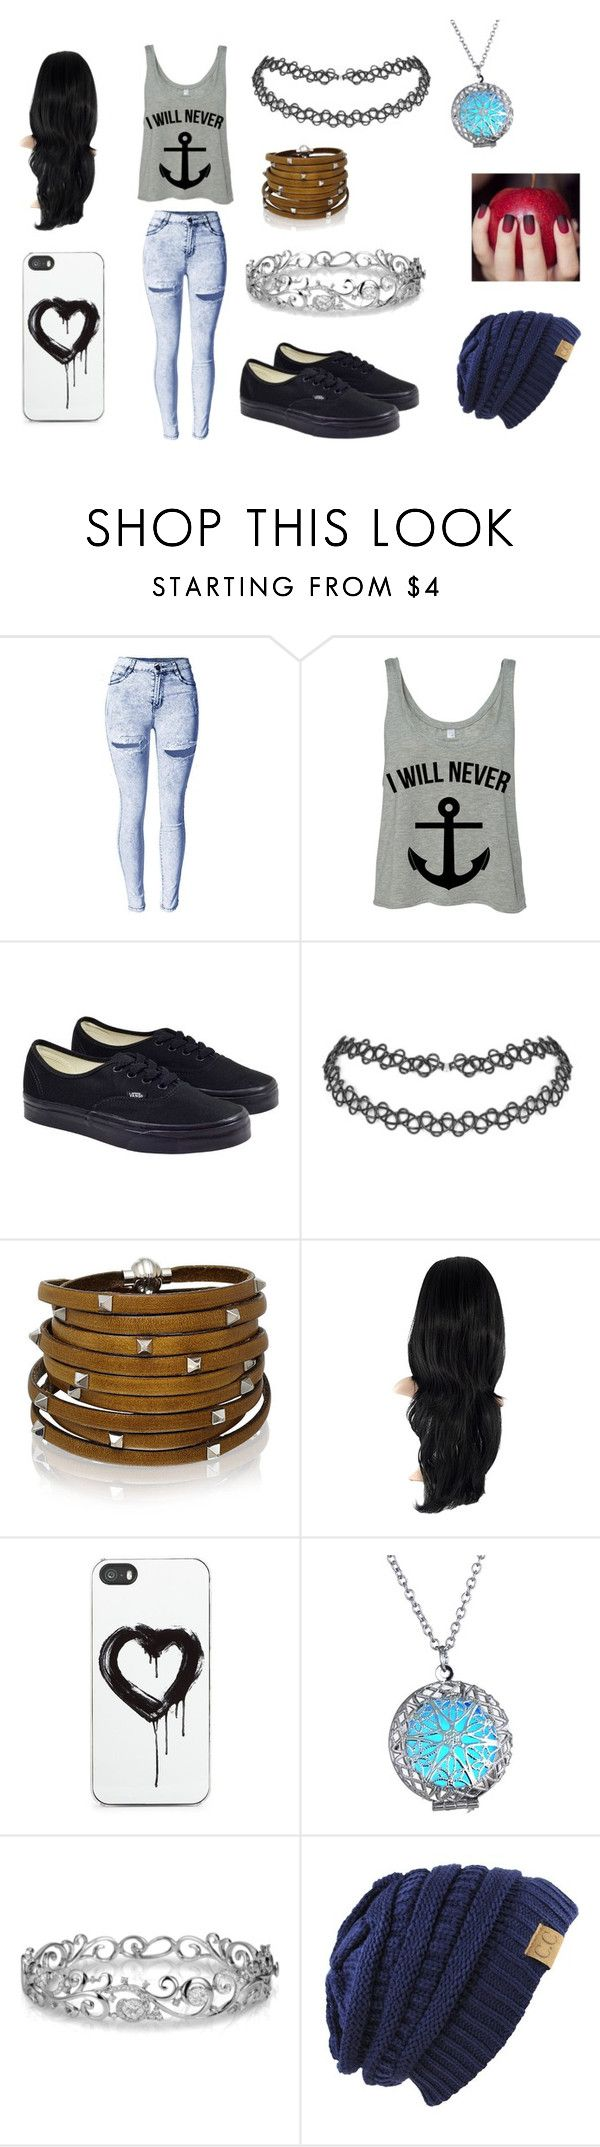 """""""Thing"""" by zahlia-tibbs on Polyvore featuring beauty, Vans, Sif Jakobs Jewellery, Zero Gravity and Effy Jewelry"""